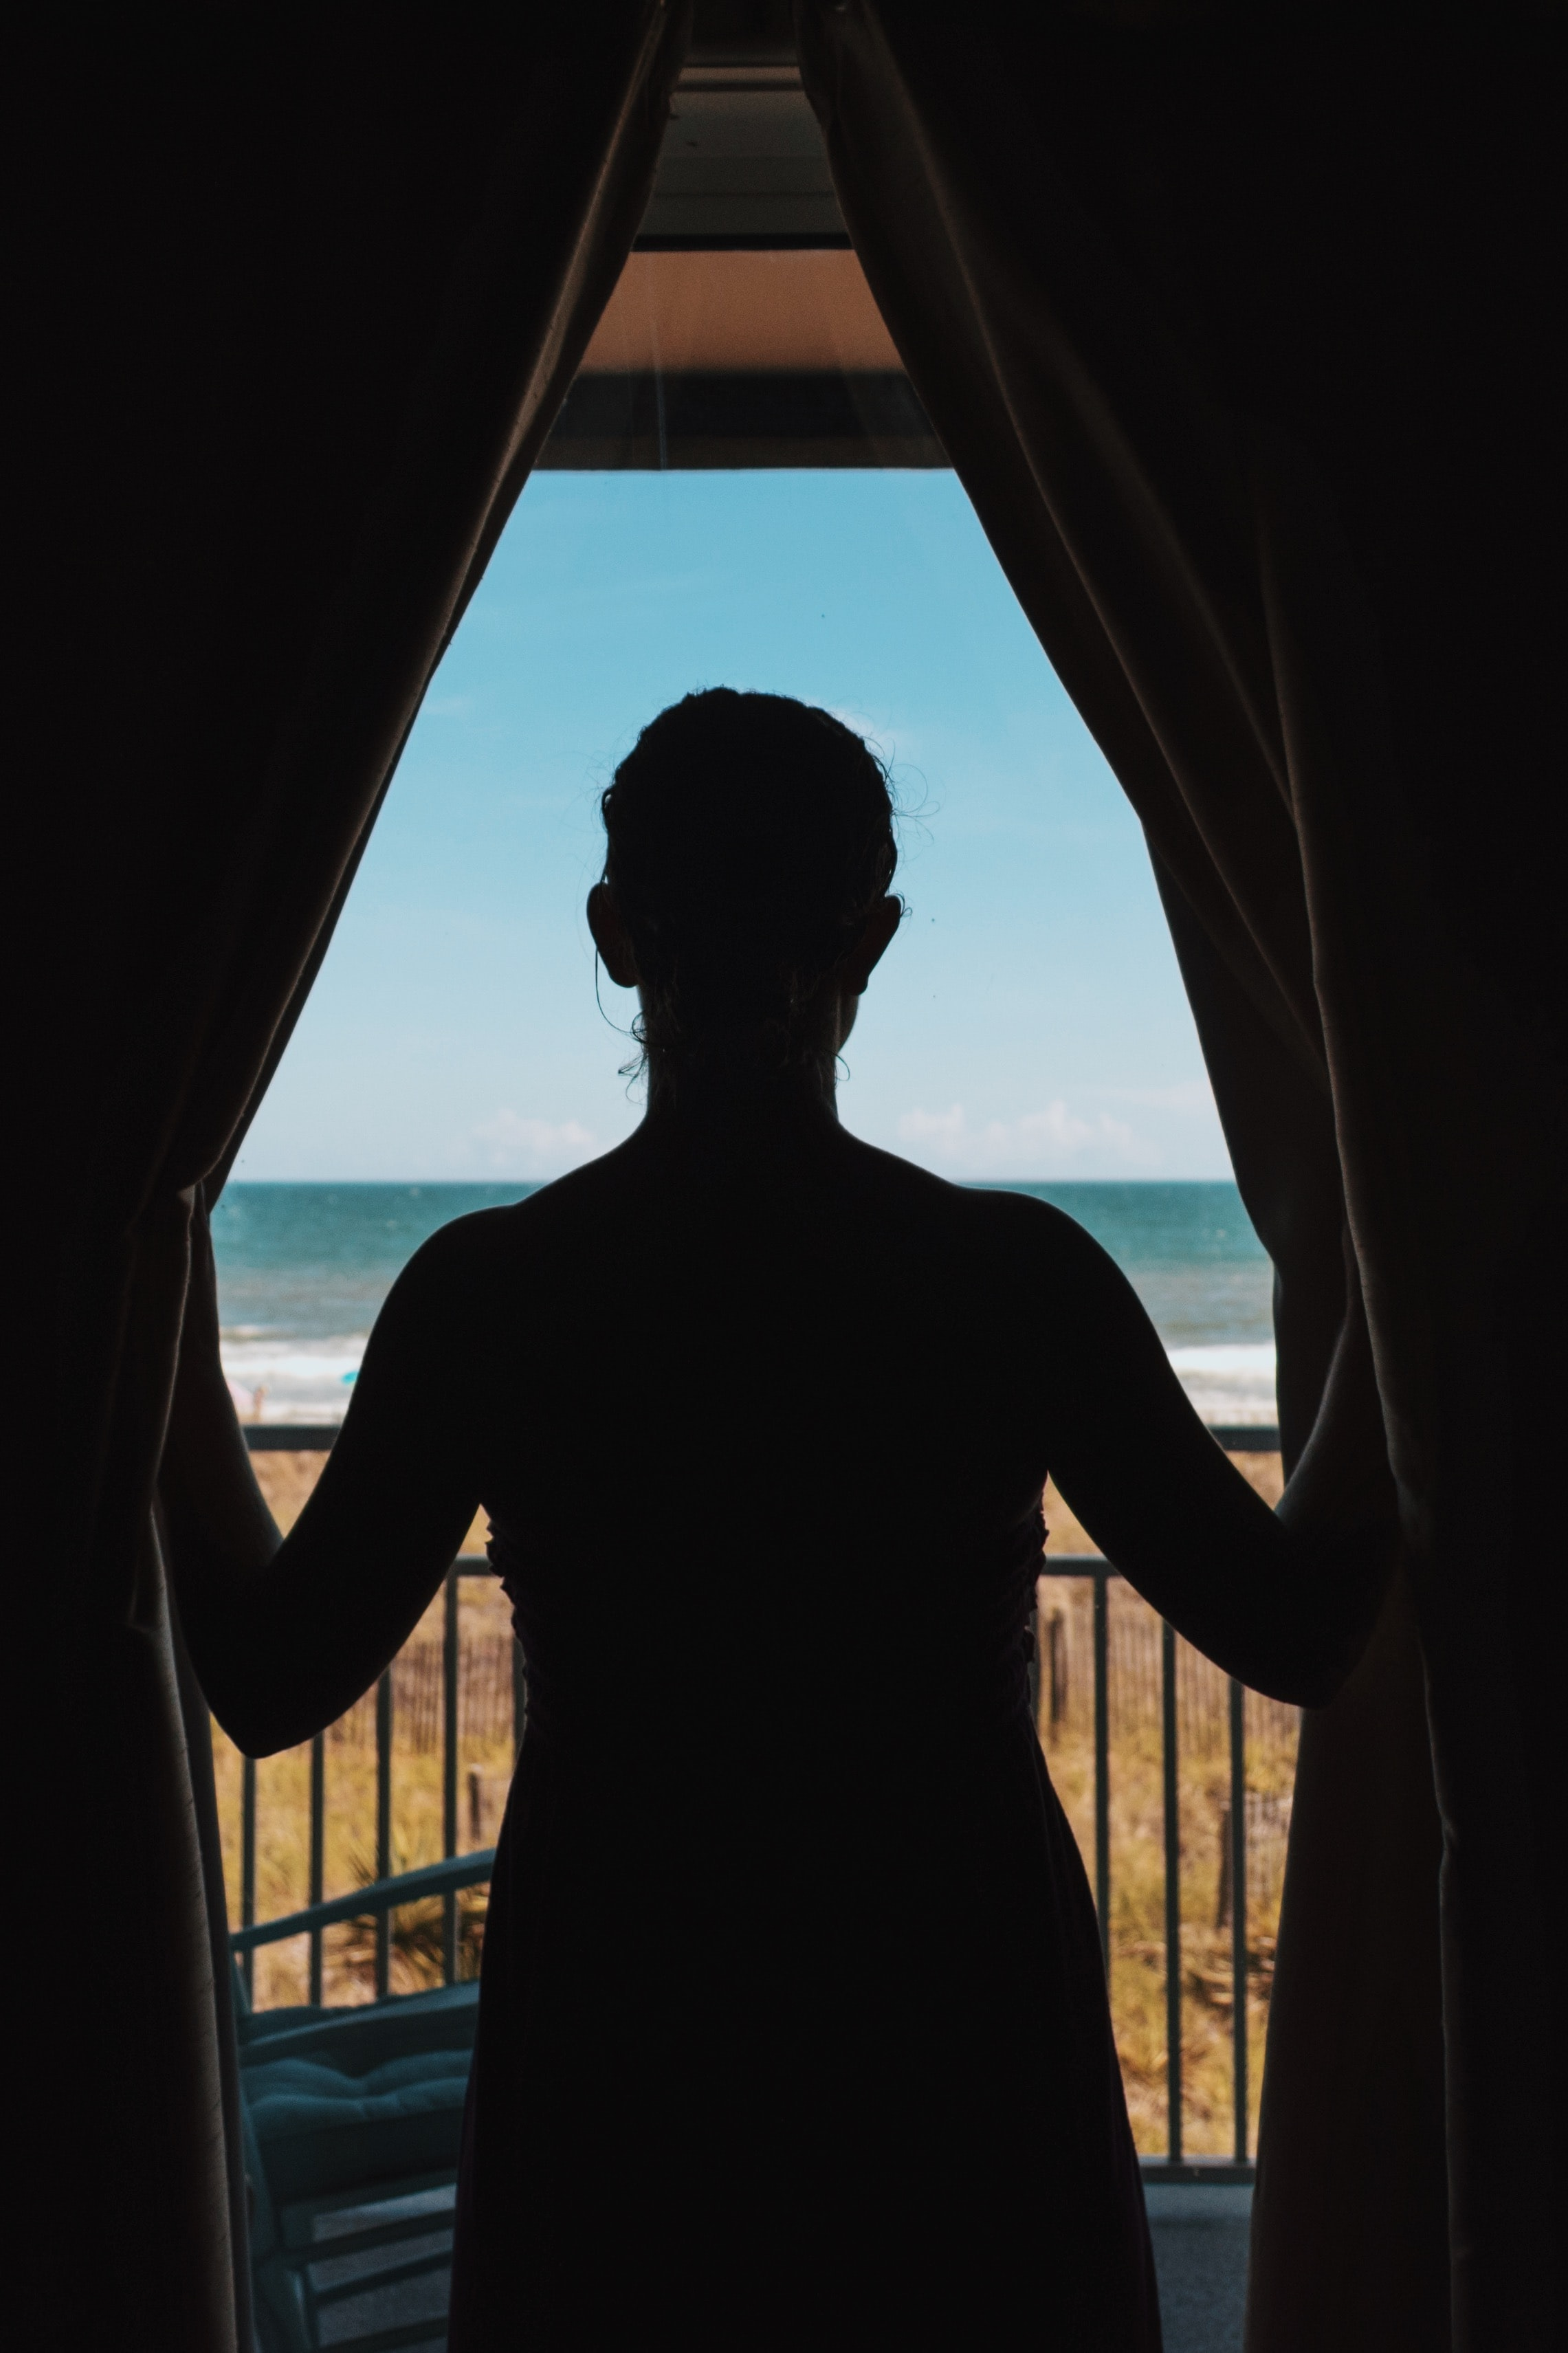 silhouette photo of woman standing between curtains